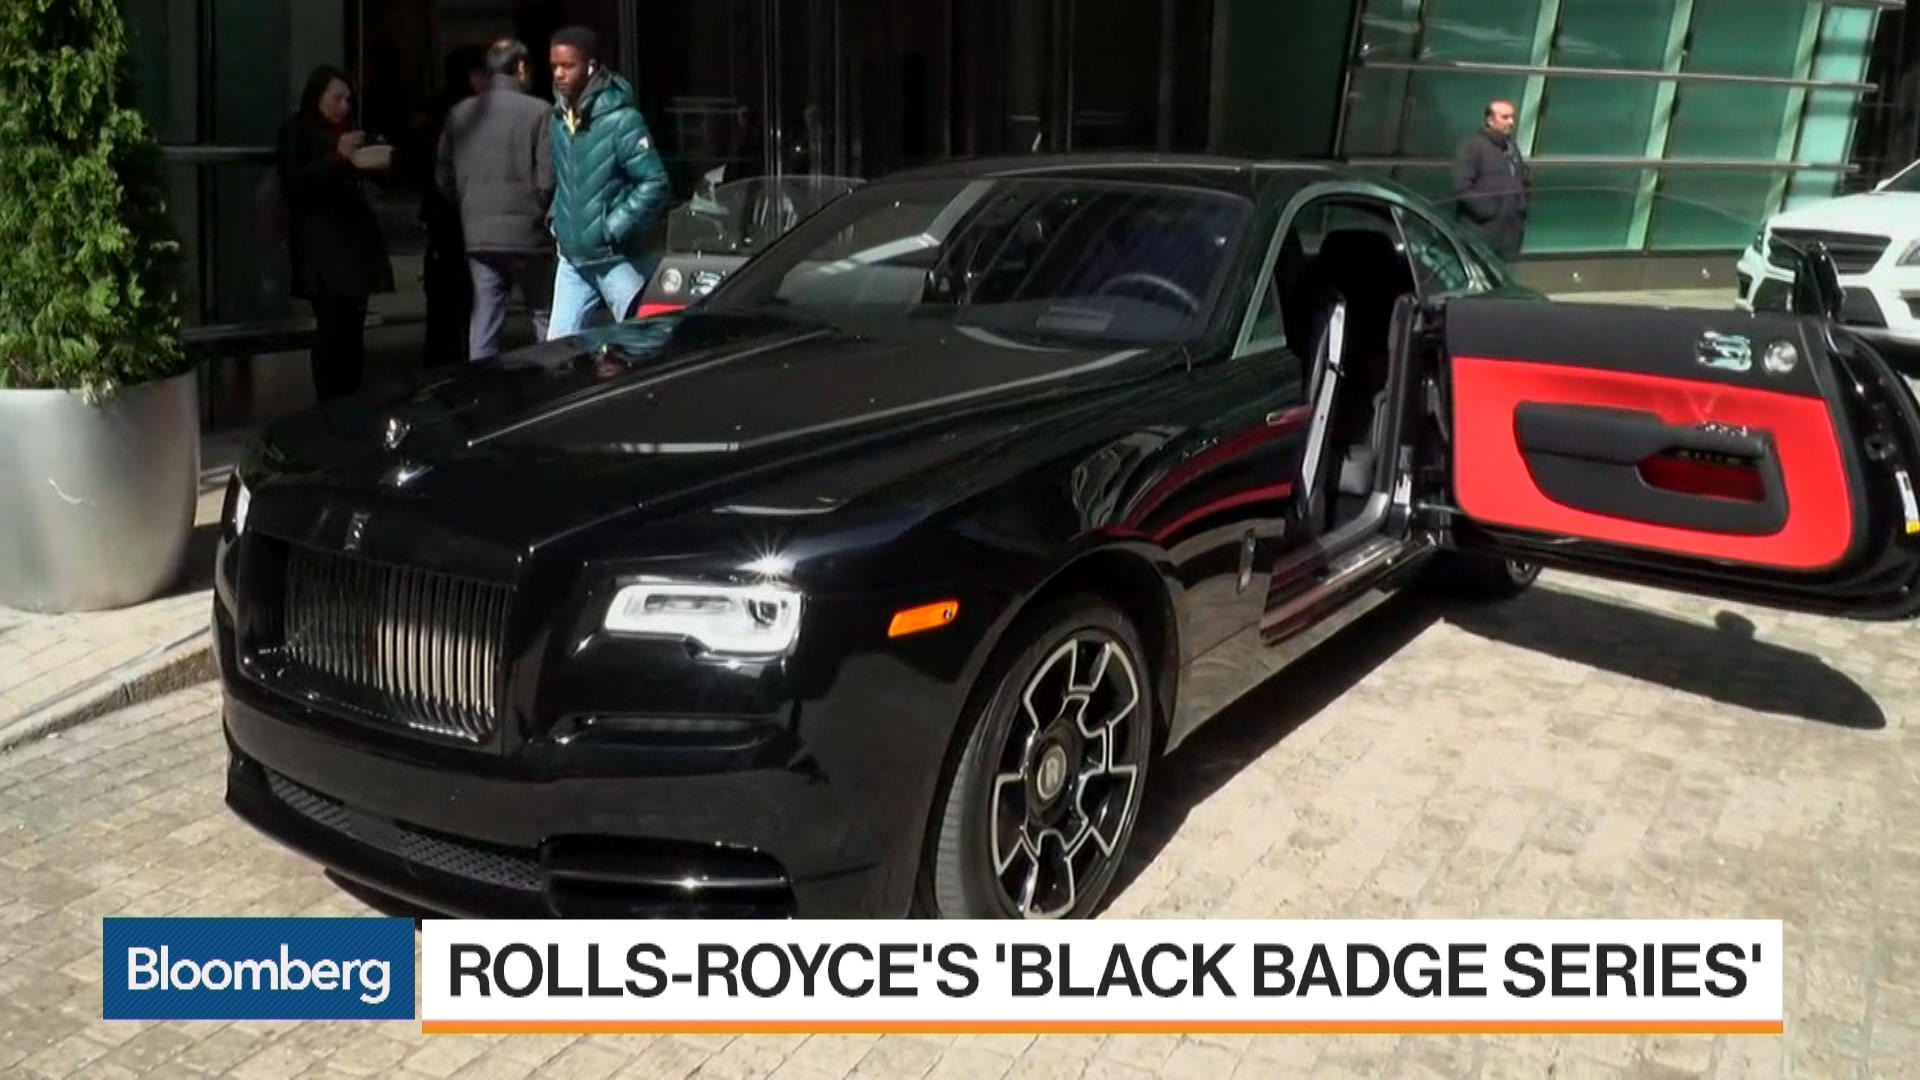 RollsRoyces Black Badge Series Targets Young Drivers Bloomberg - Rolls royce financial services